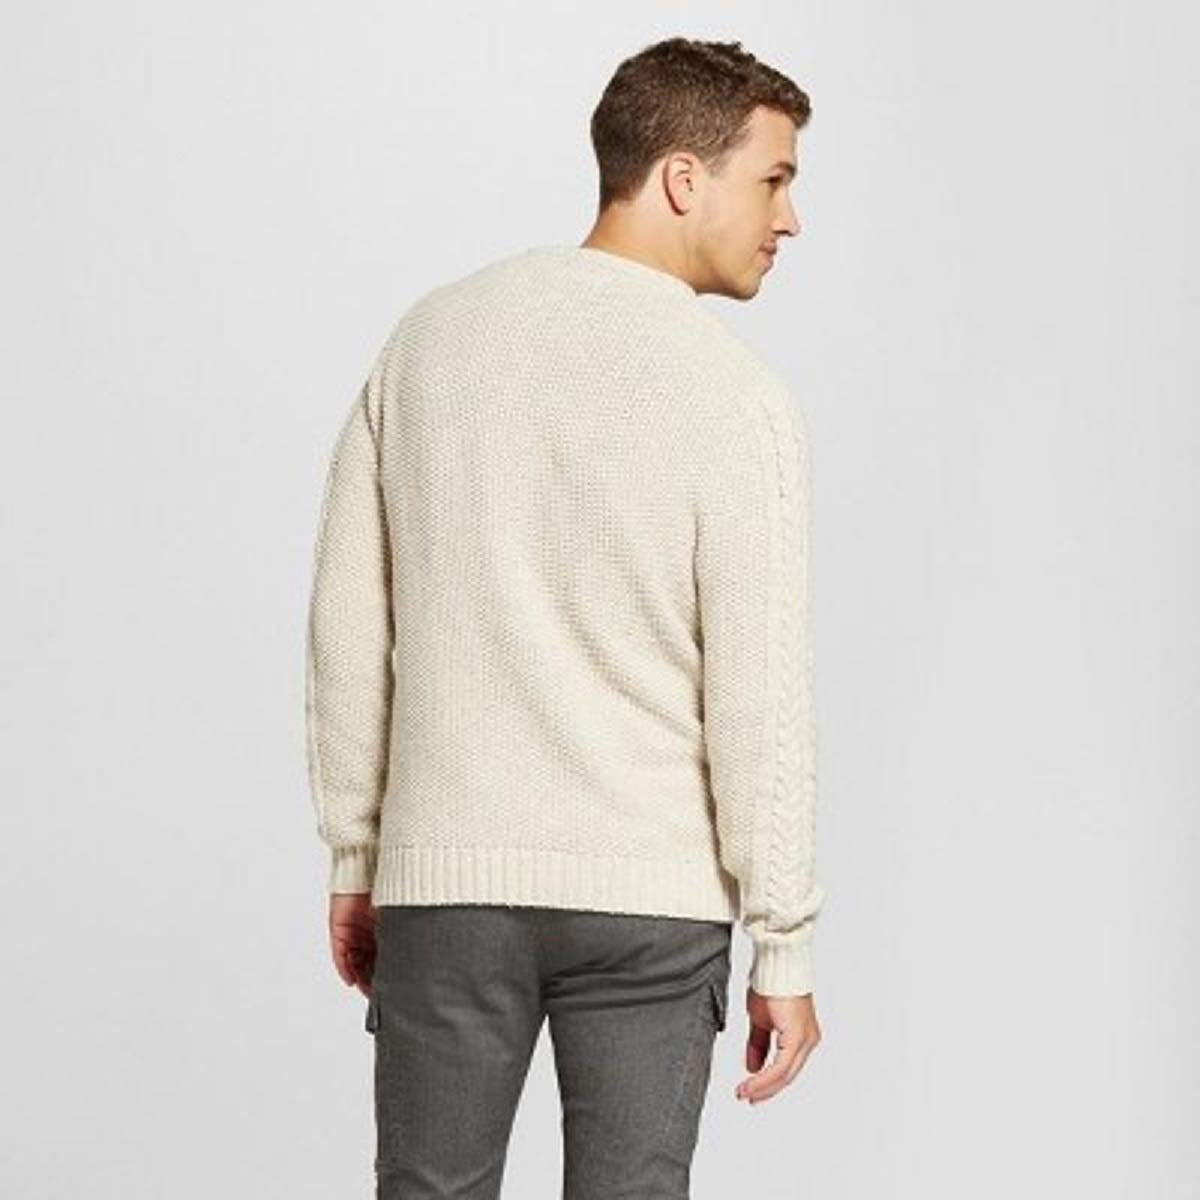 Oatmeal Medium M Goodfellow /& CO Gorgeous Mens Cable Crew Neck Sweater